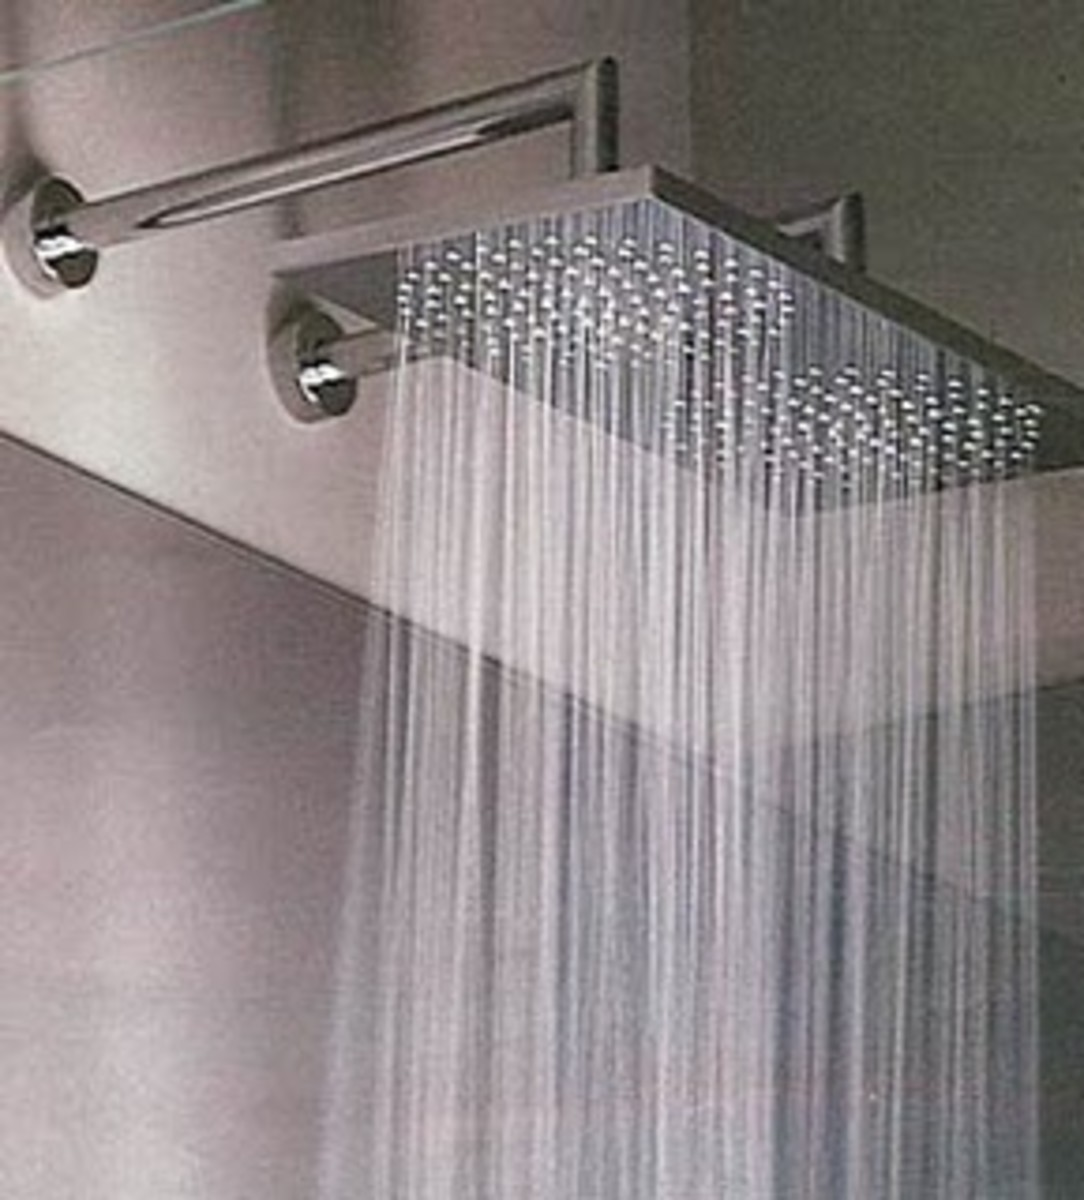 This is another example of a common gentle rain showerhead